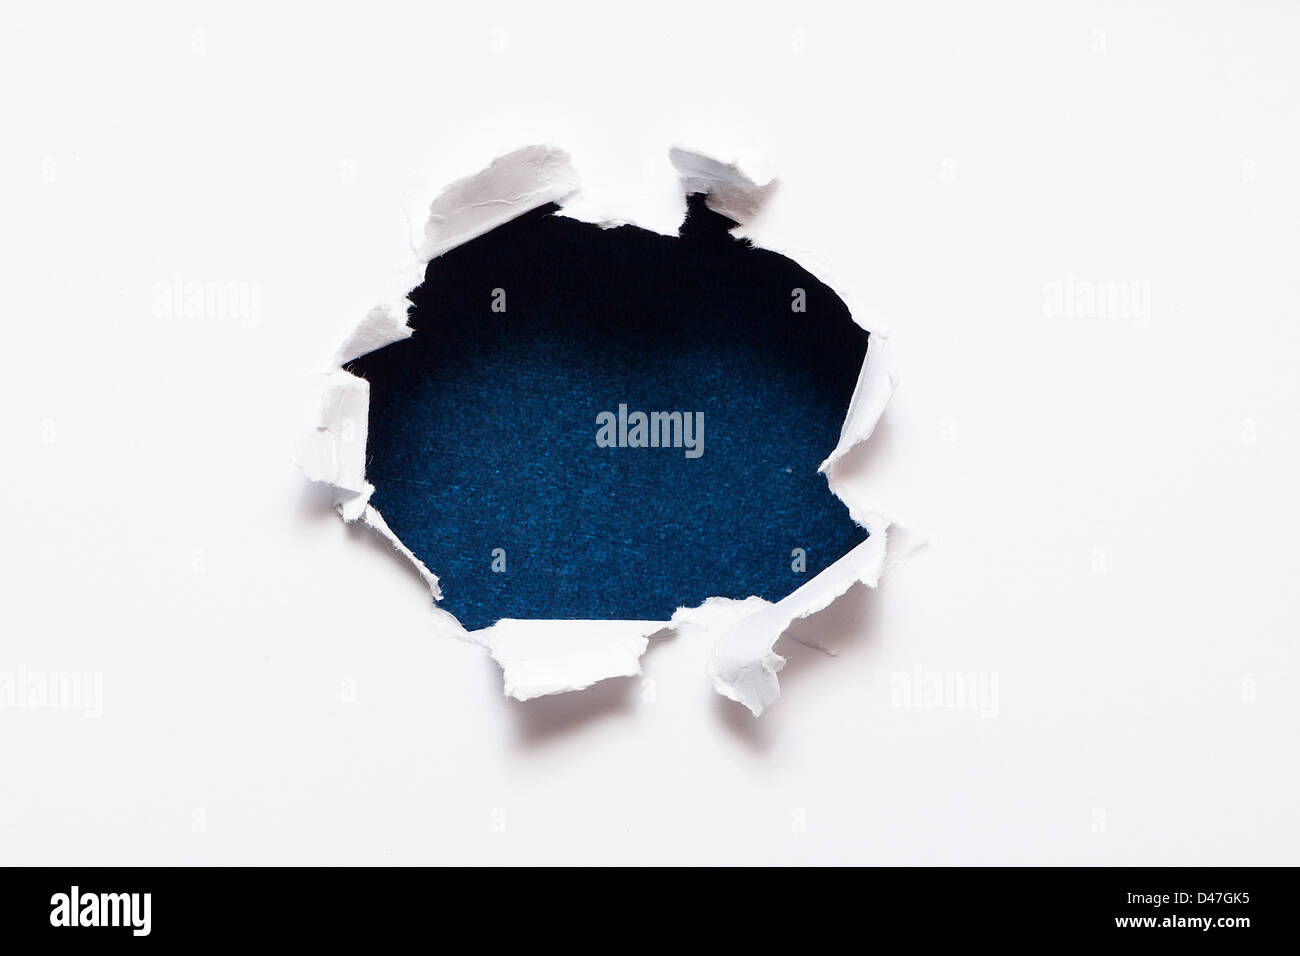 Breakthrough paper hole with black textured background. - Stock Image